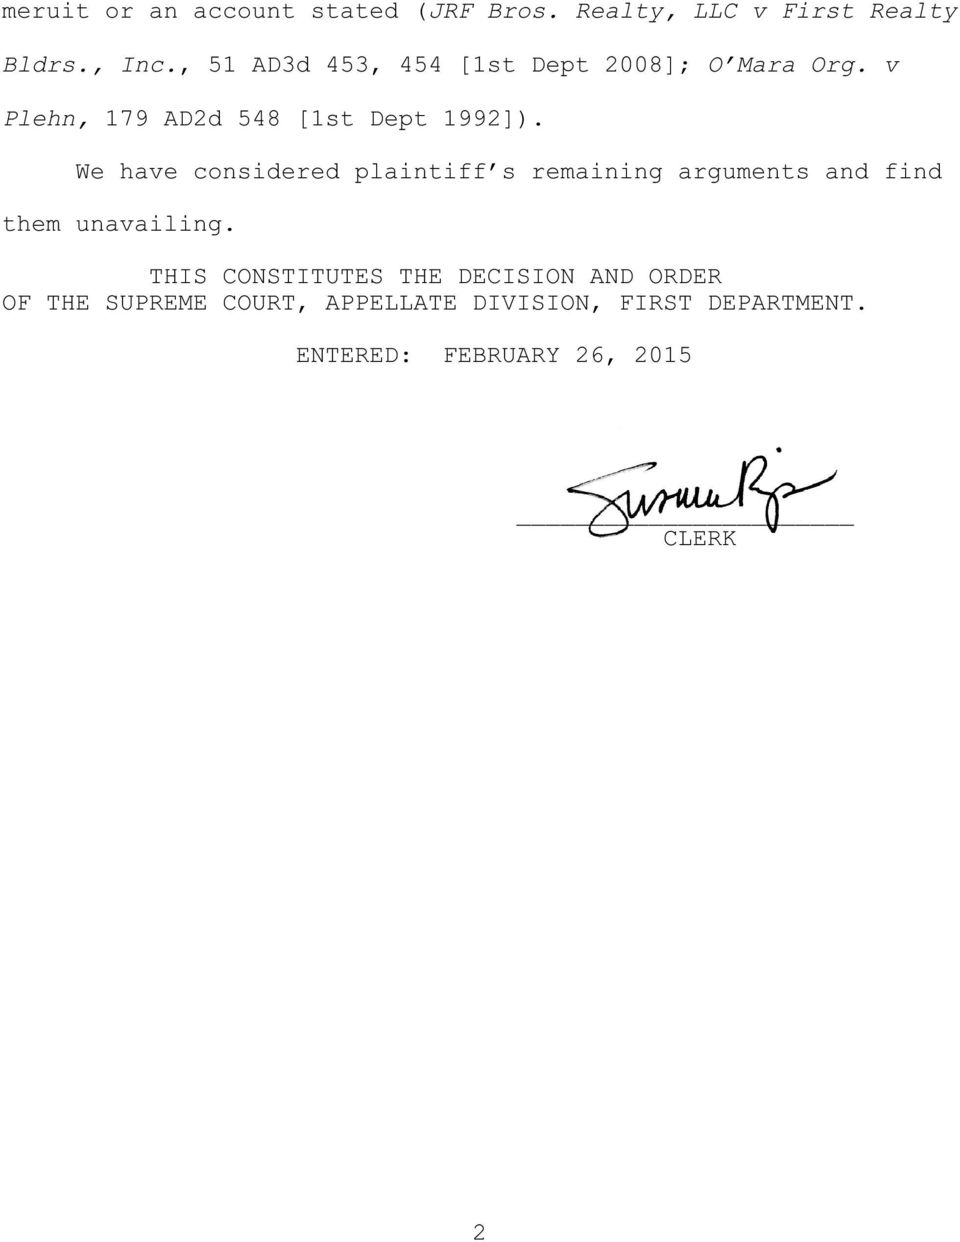 We have considered plaintiff s remaining arguments and find them unavailing.